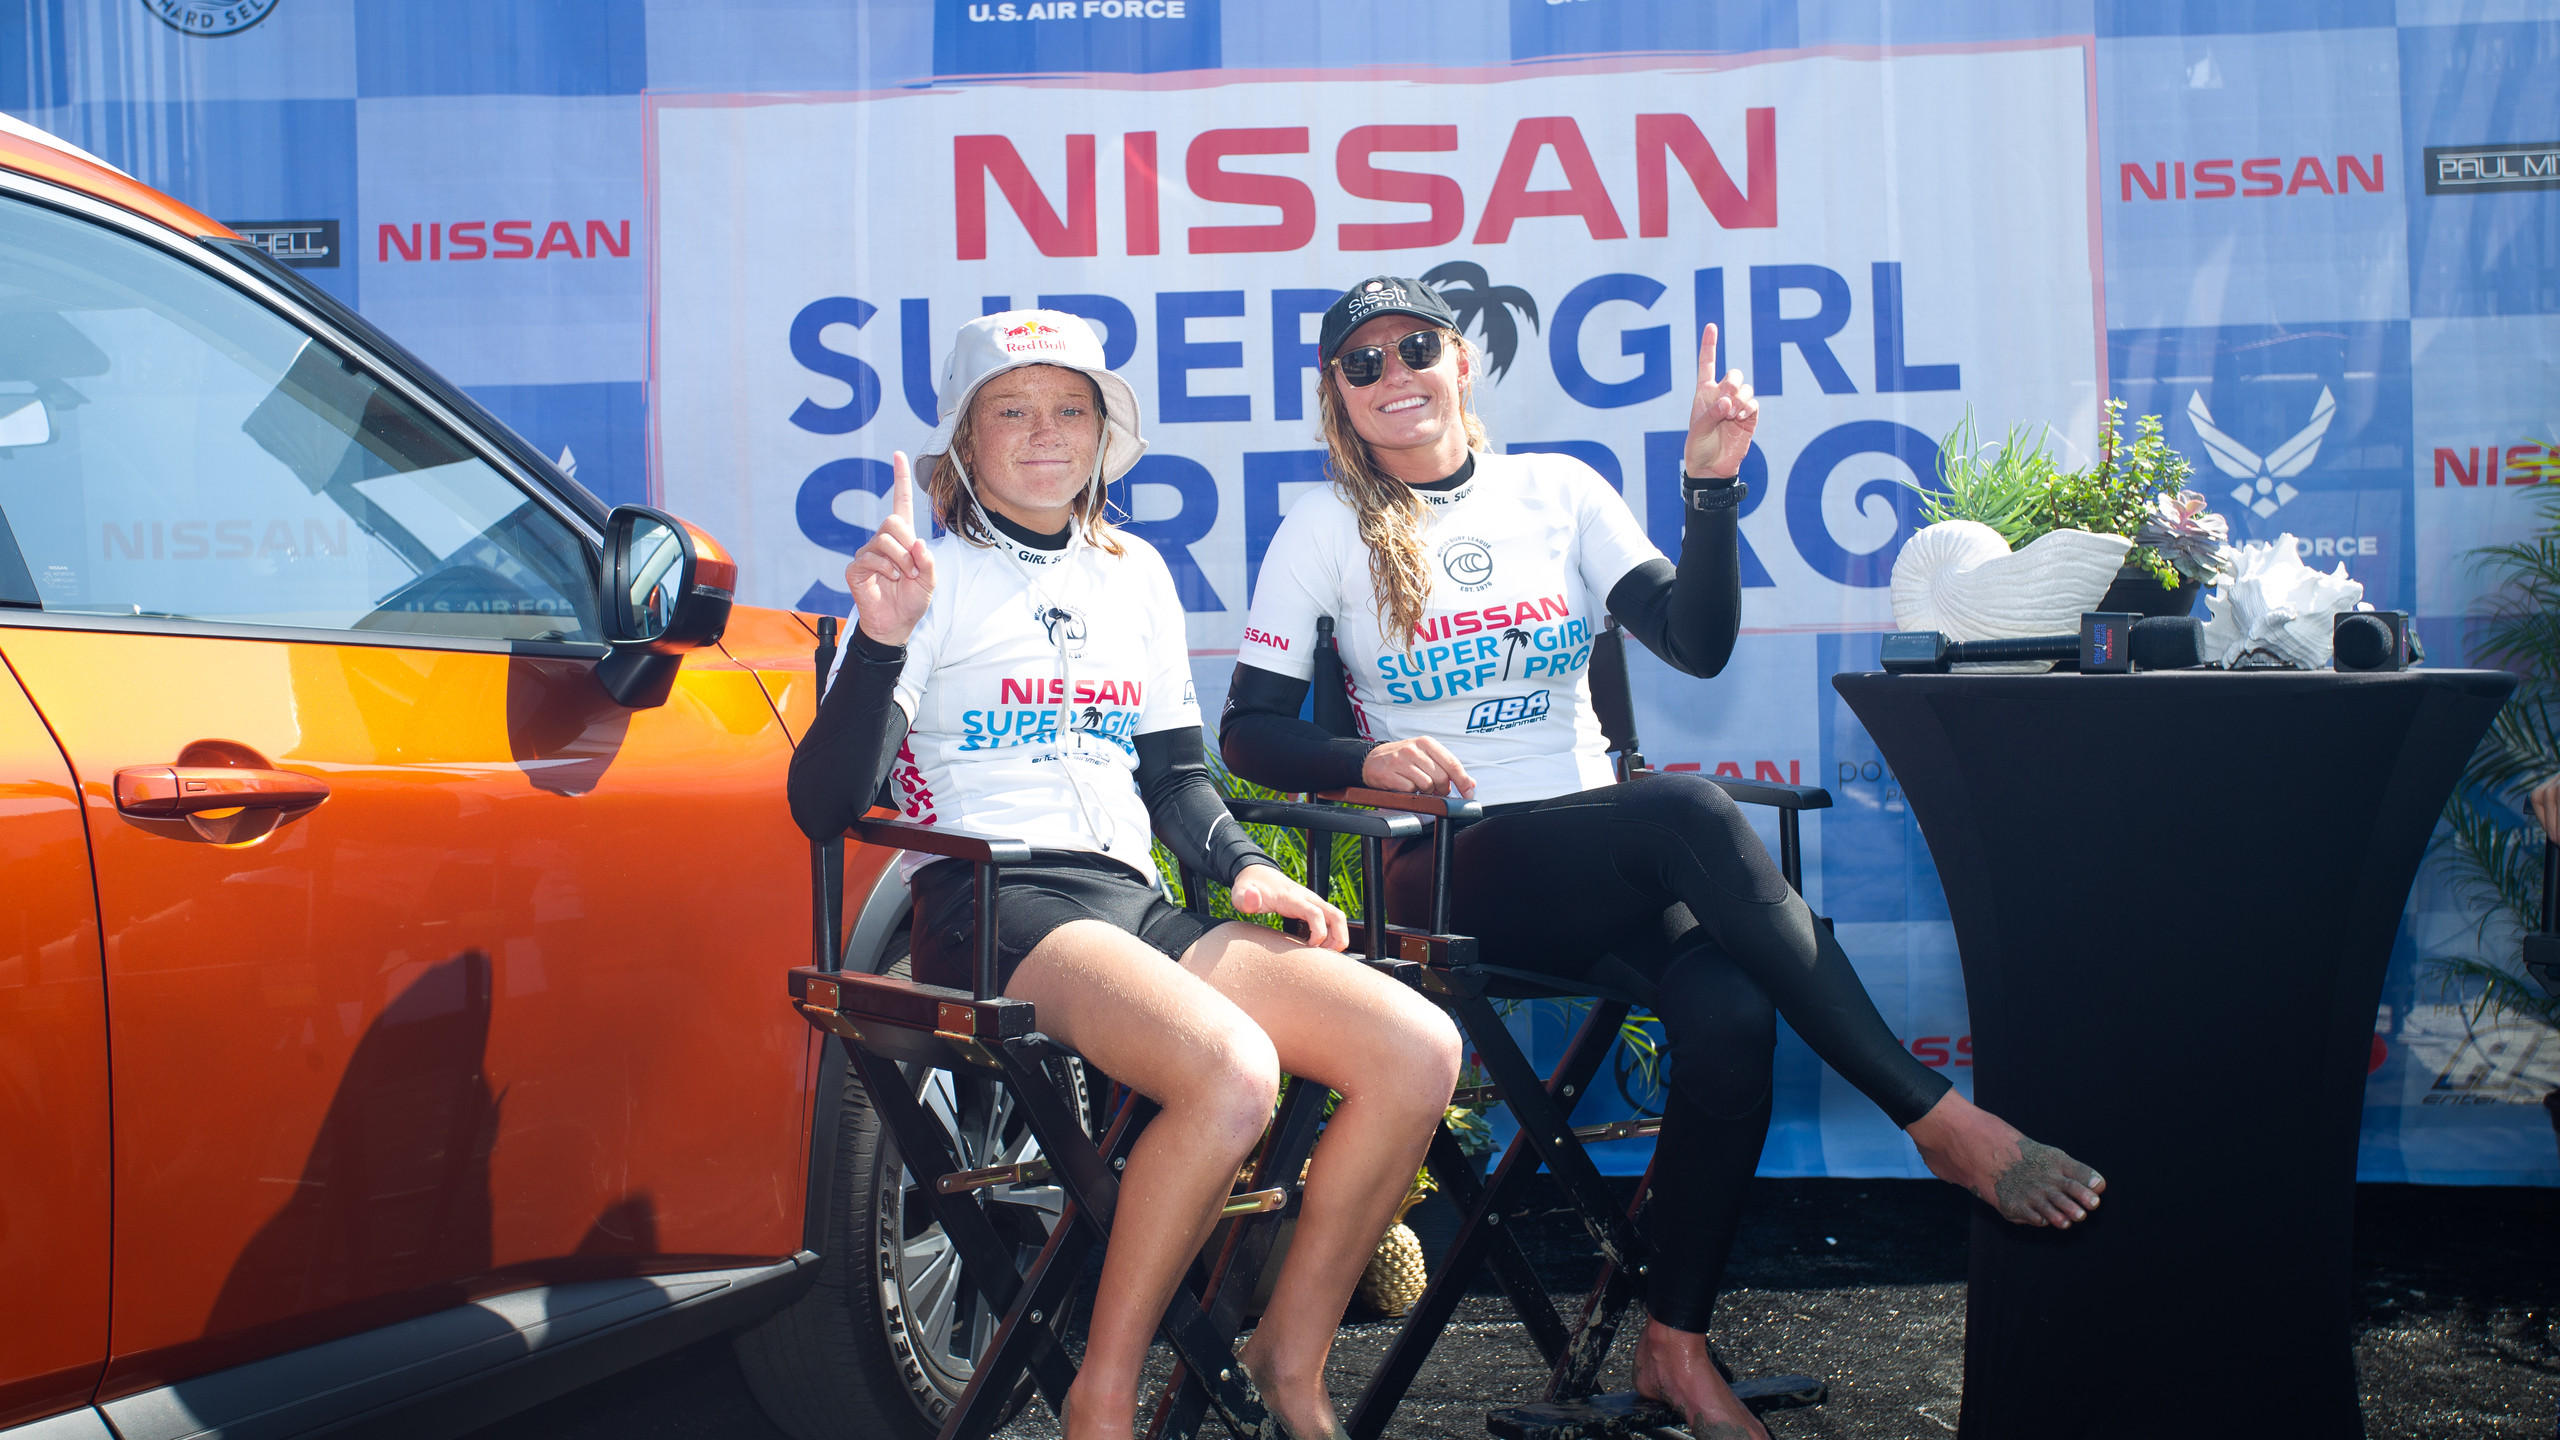 As surfistas Caitlin Simmers e Lakey Peterson, campeãs do Nissan Super Girl Surf Pro.